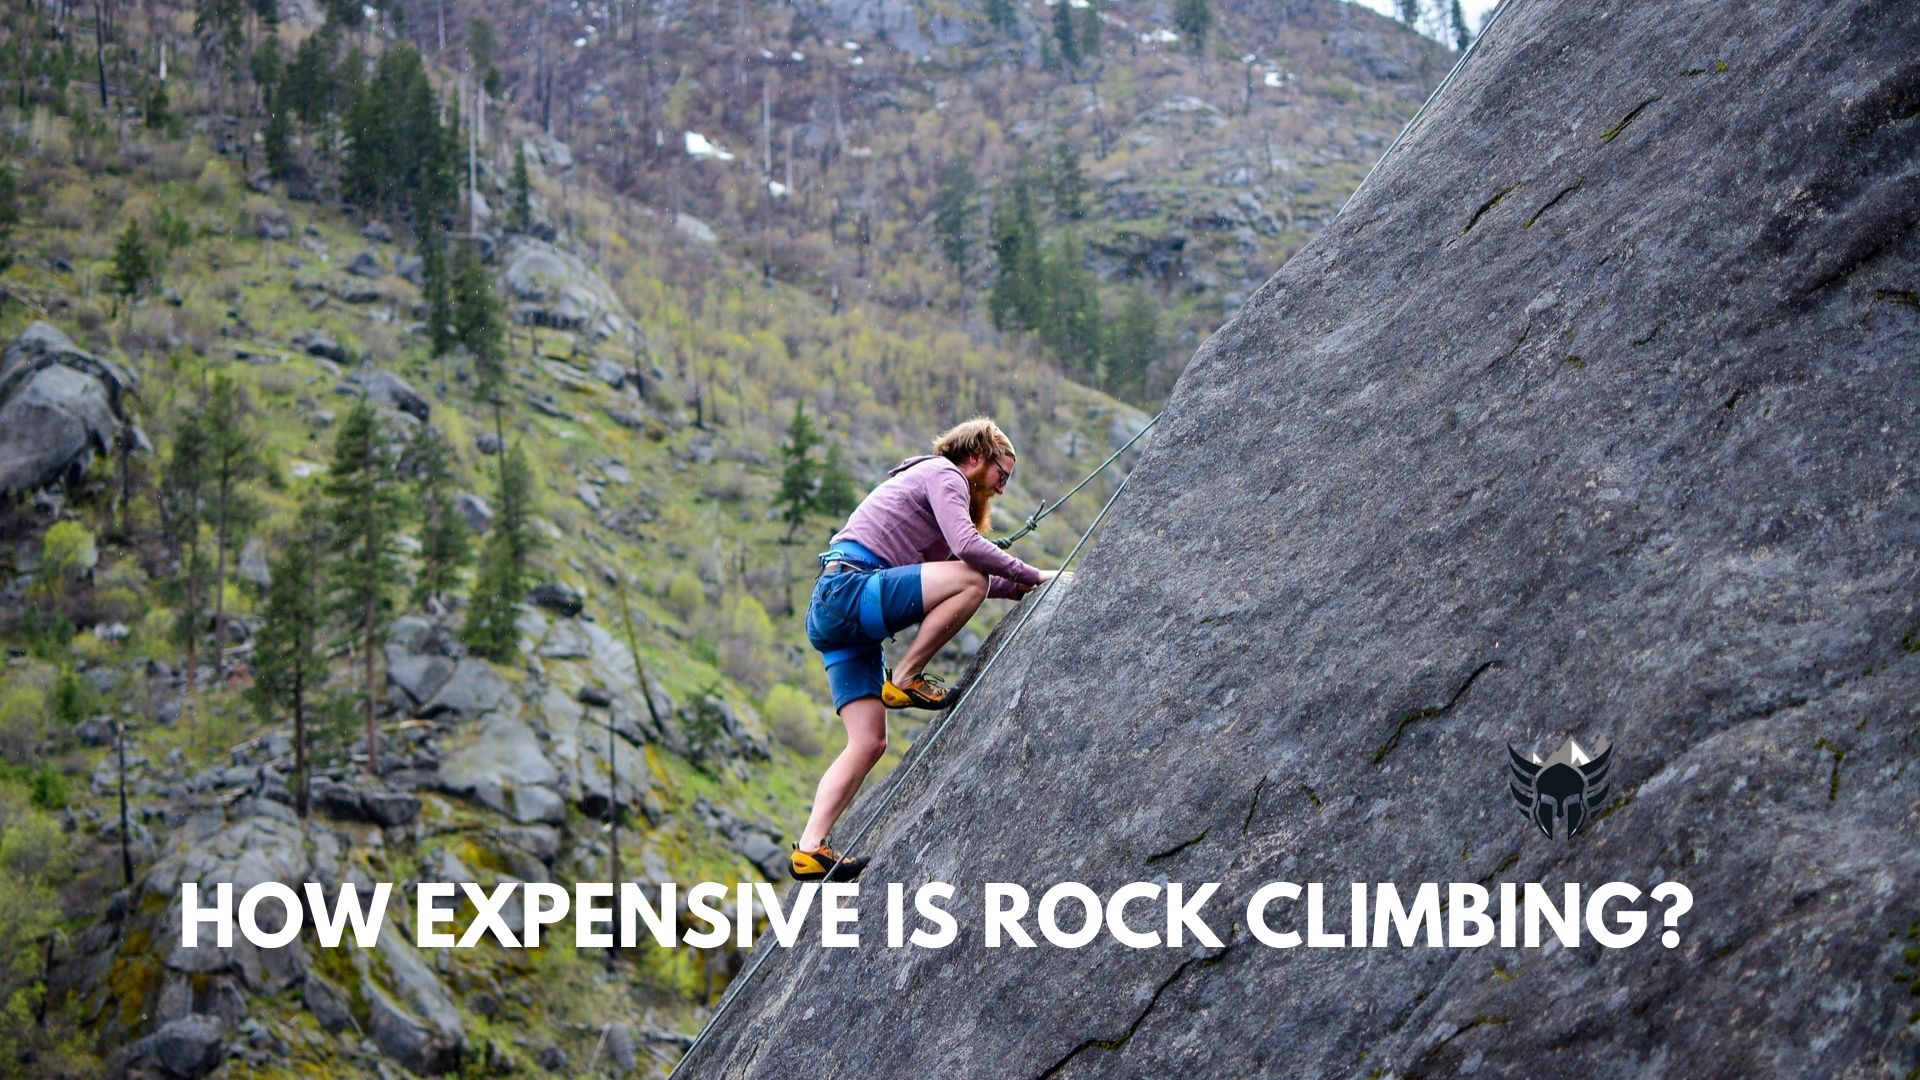 How Expensive is Rock Climbing